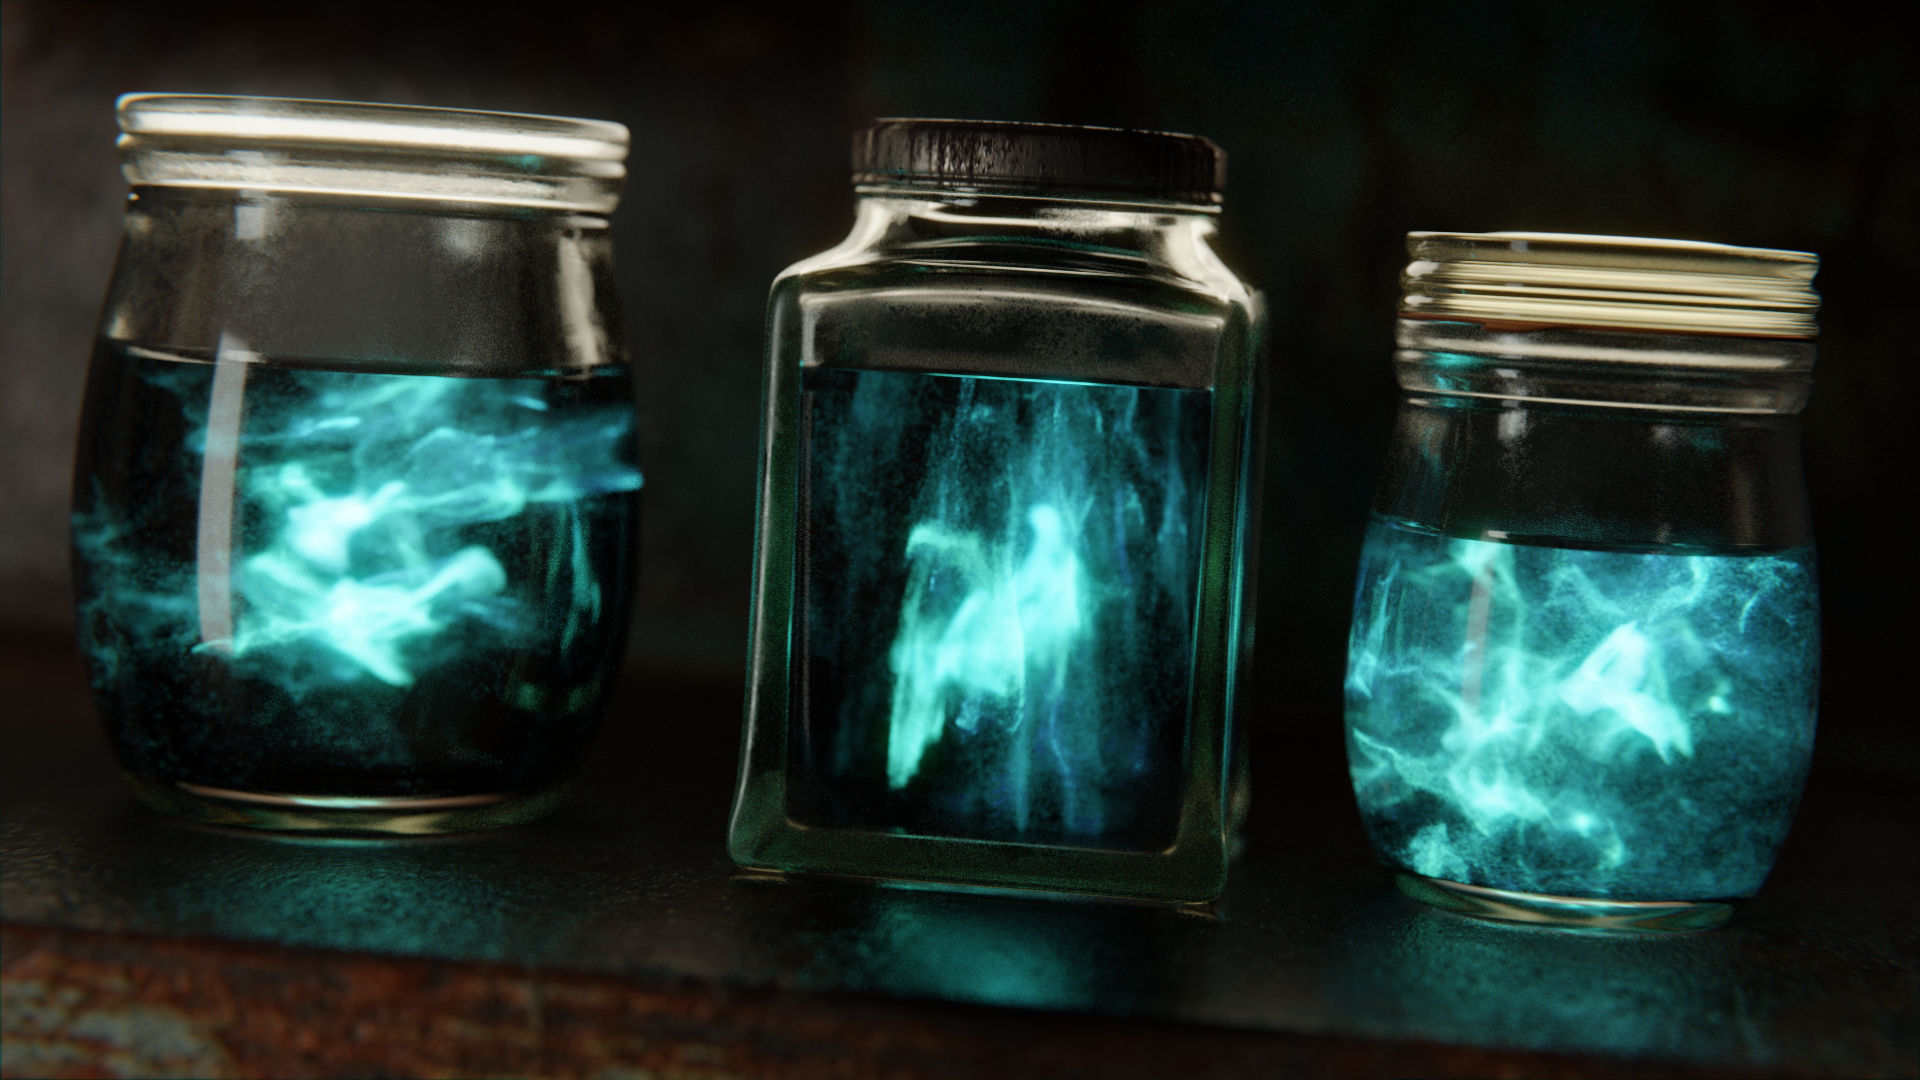 Basic Magical Effect: Ghosts in Jars